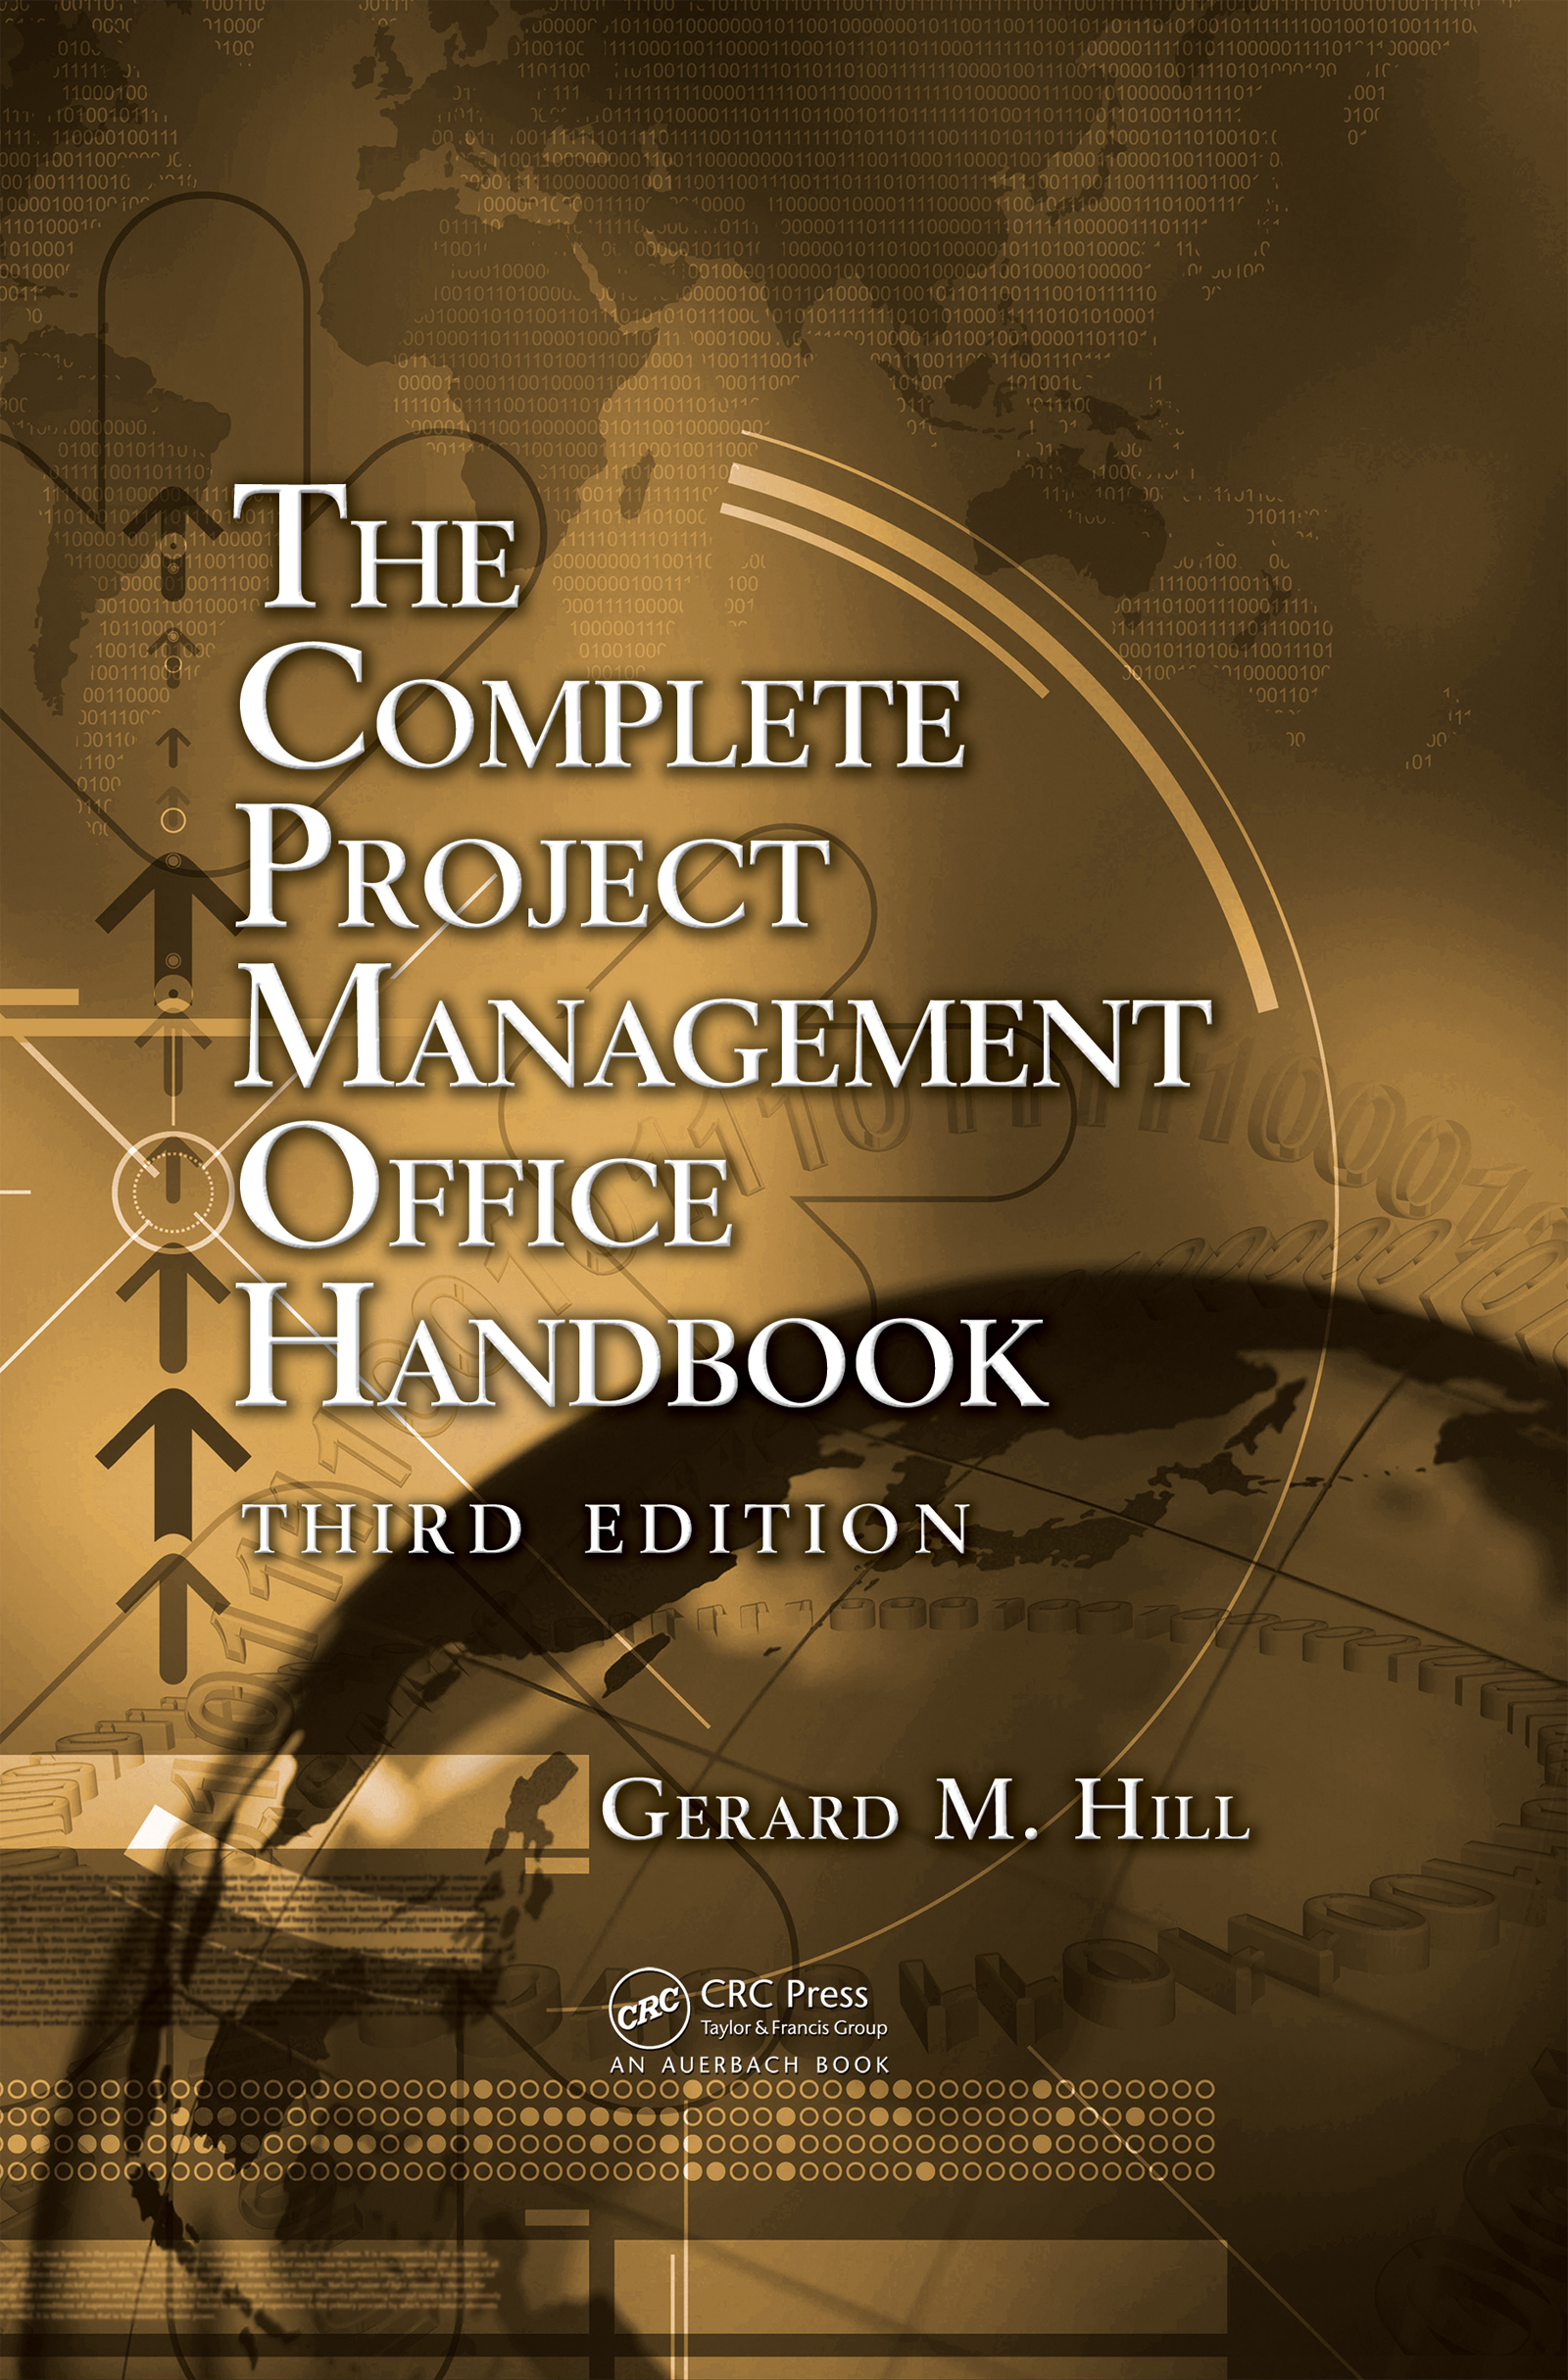 Download Ebook The Complete Project Management Office Handbook (3rd ed.) by CRC Press Pdf